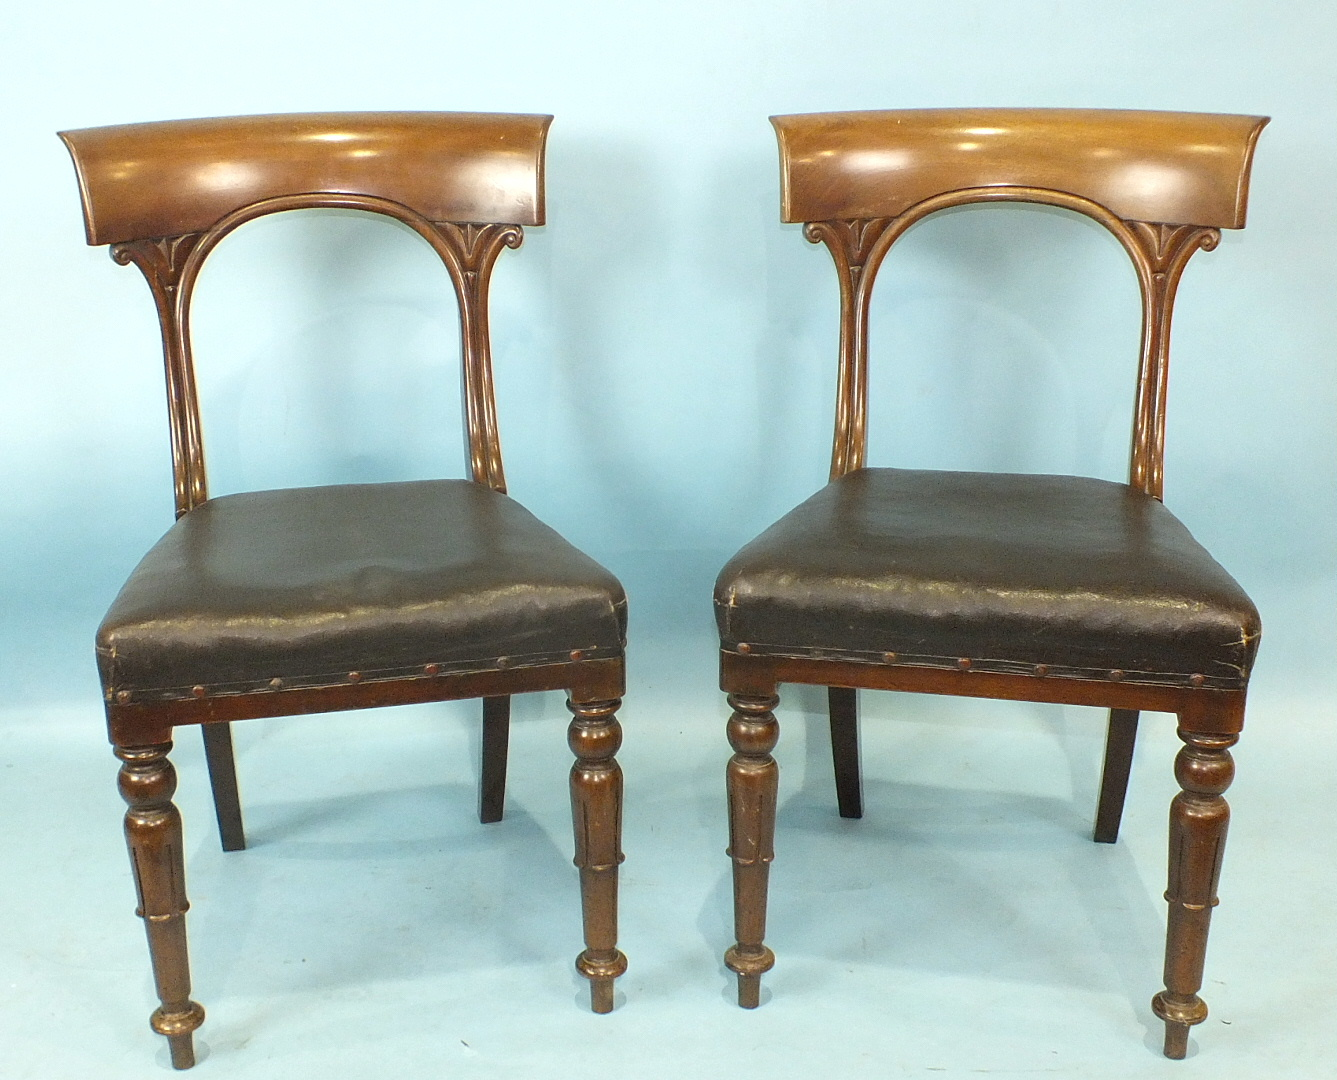 Lot 7 - A set of six 19th century mahogany dining chairs, each with curved top rail, open back and